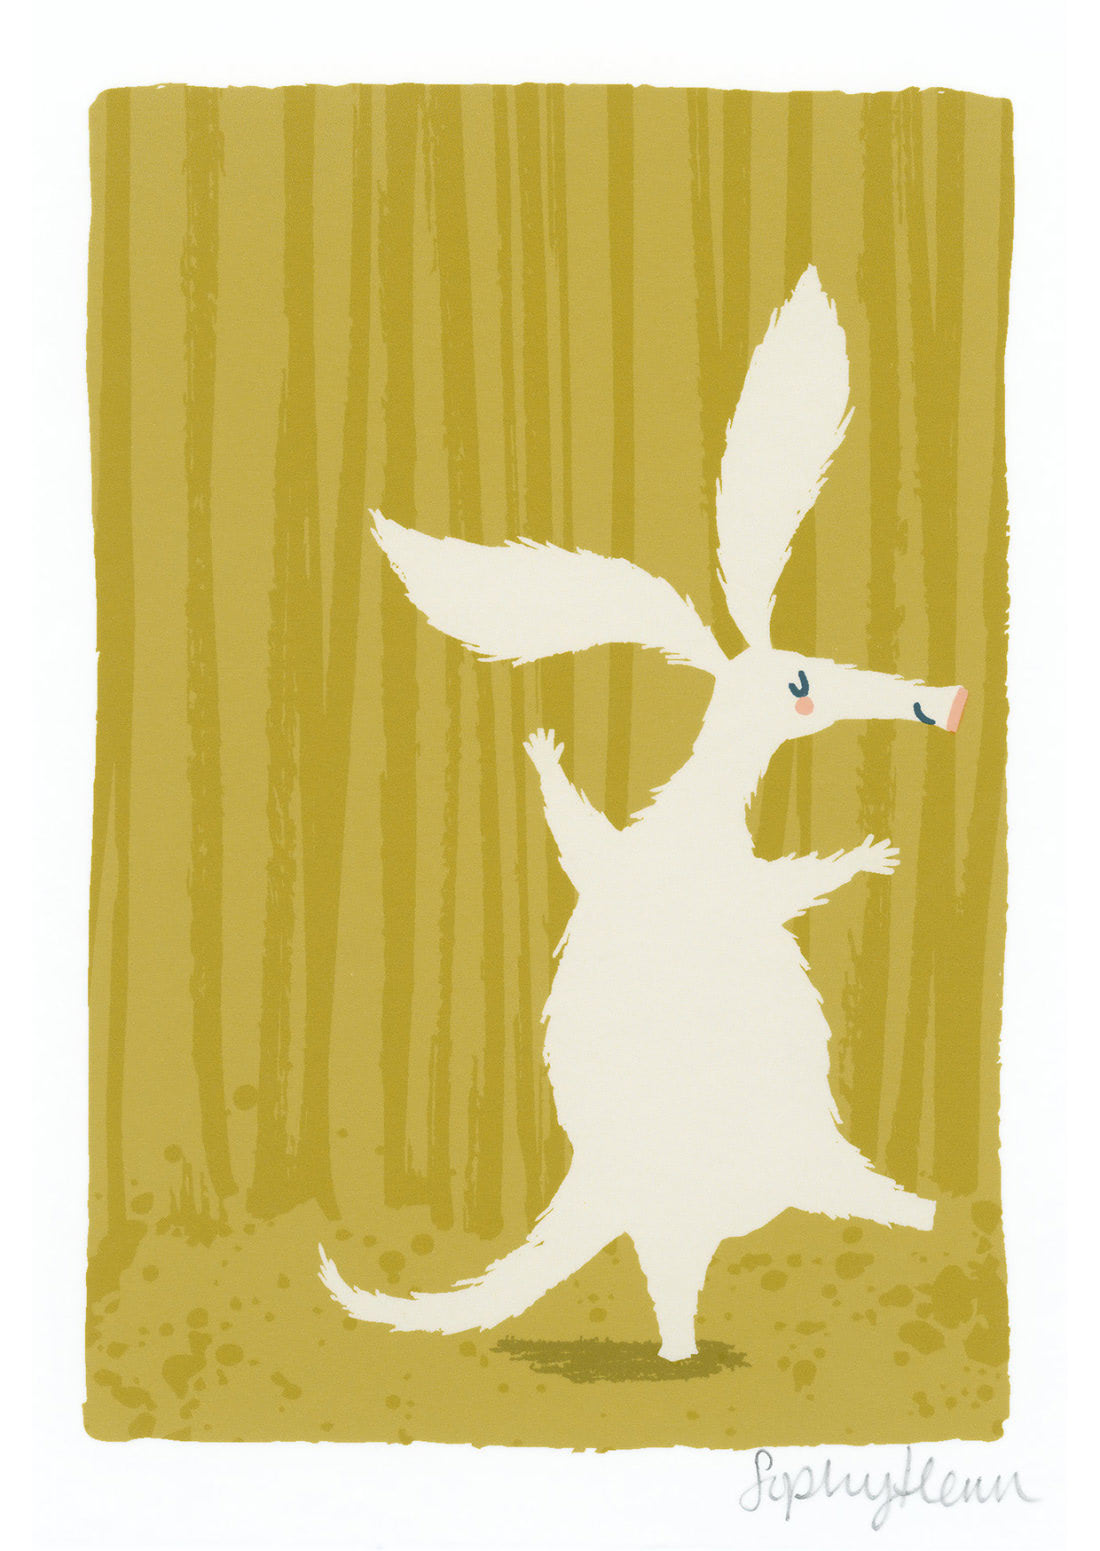 Aardvark (Sophy Henn Patronus on a Postcard)